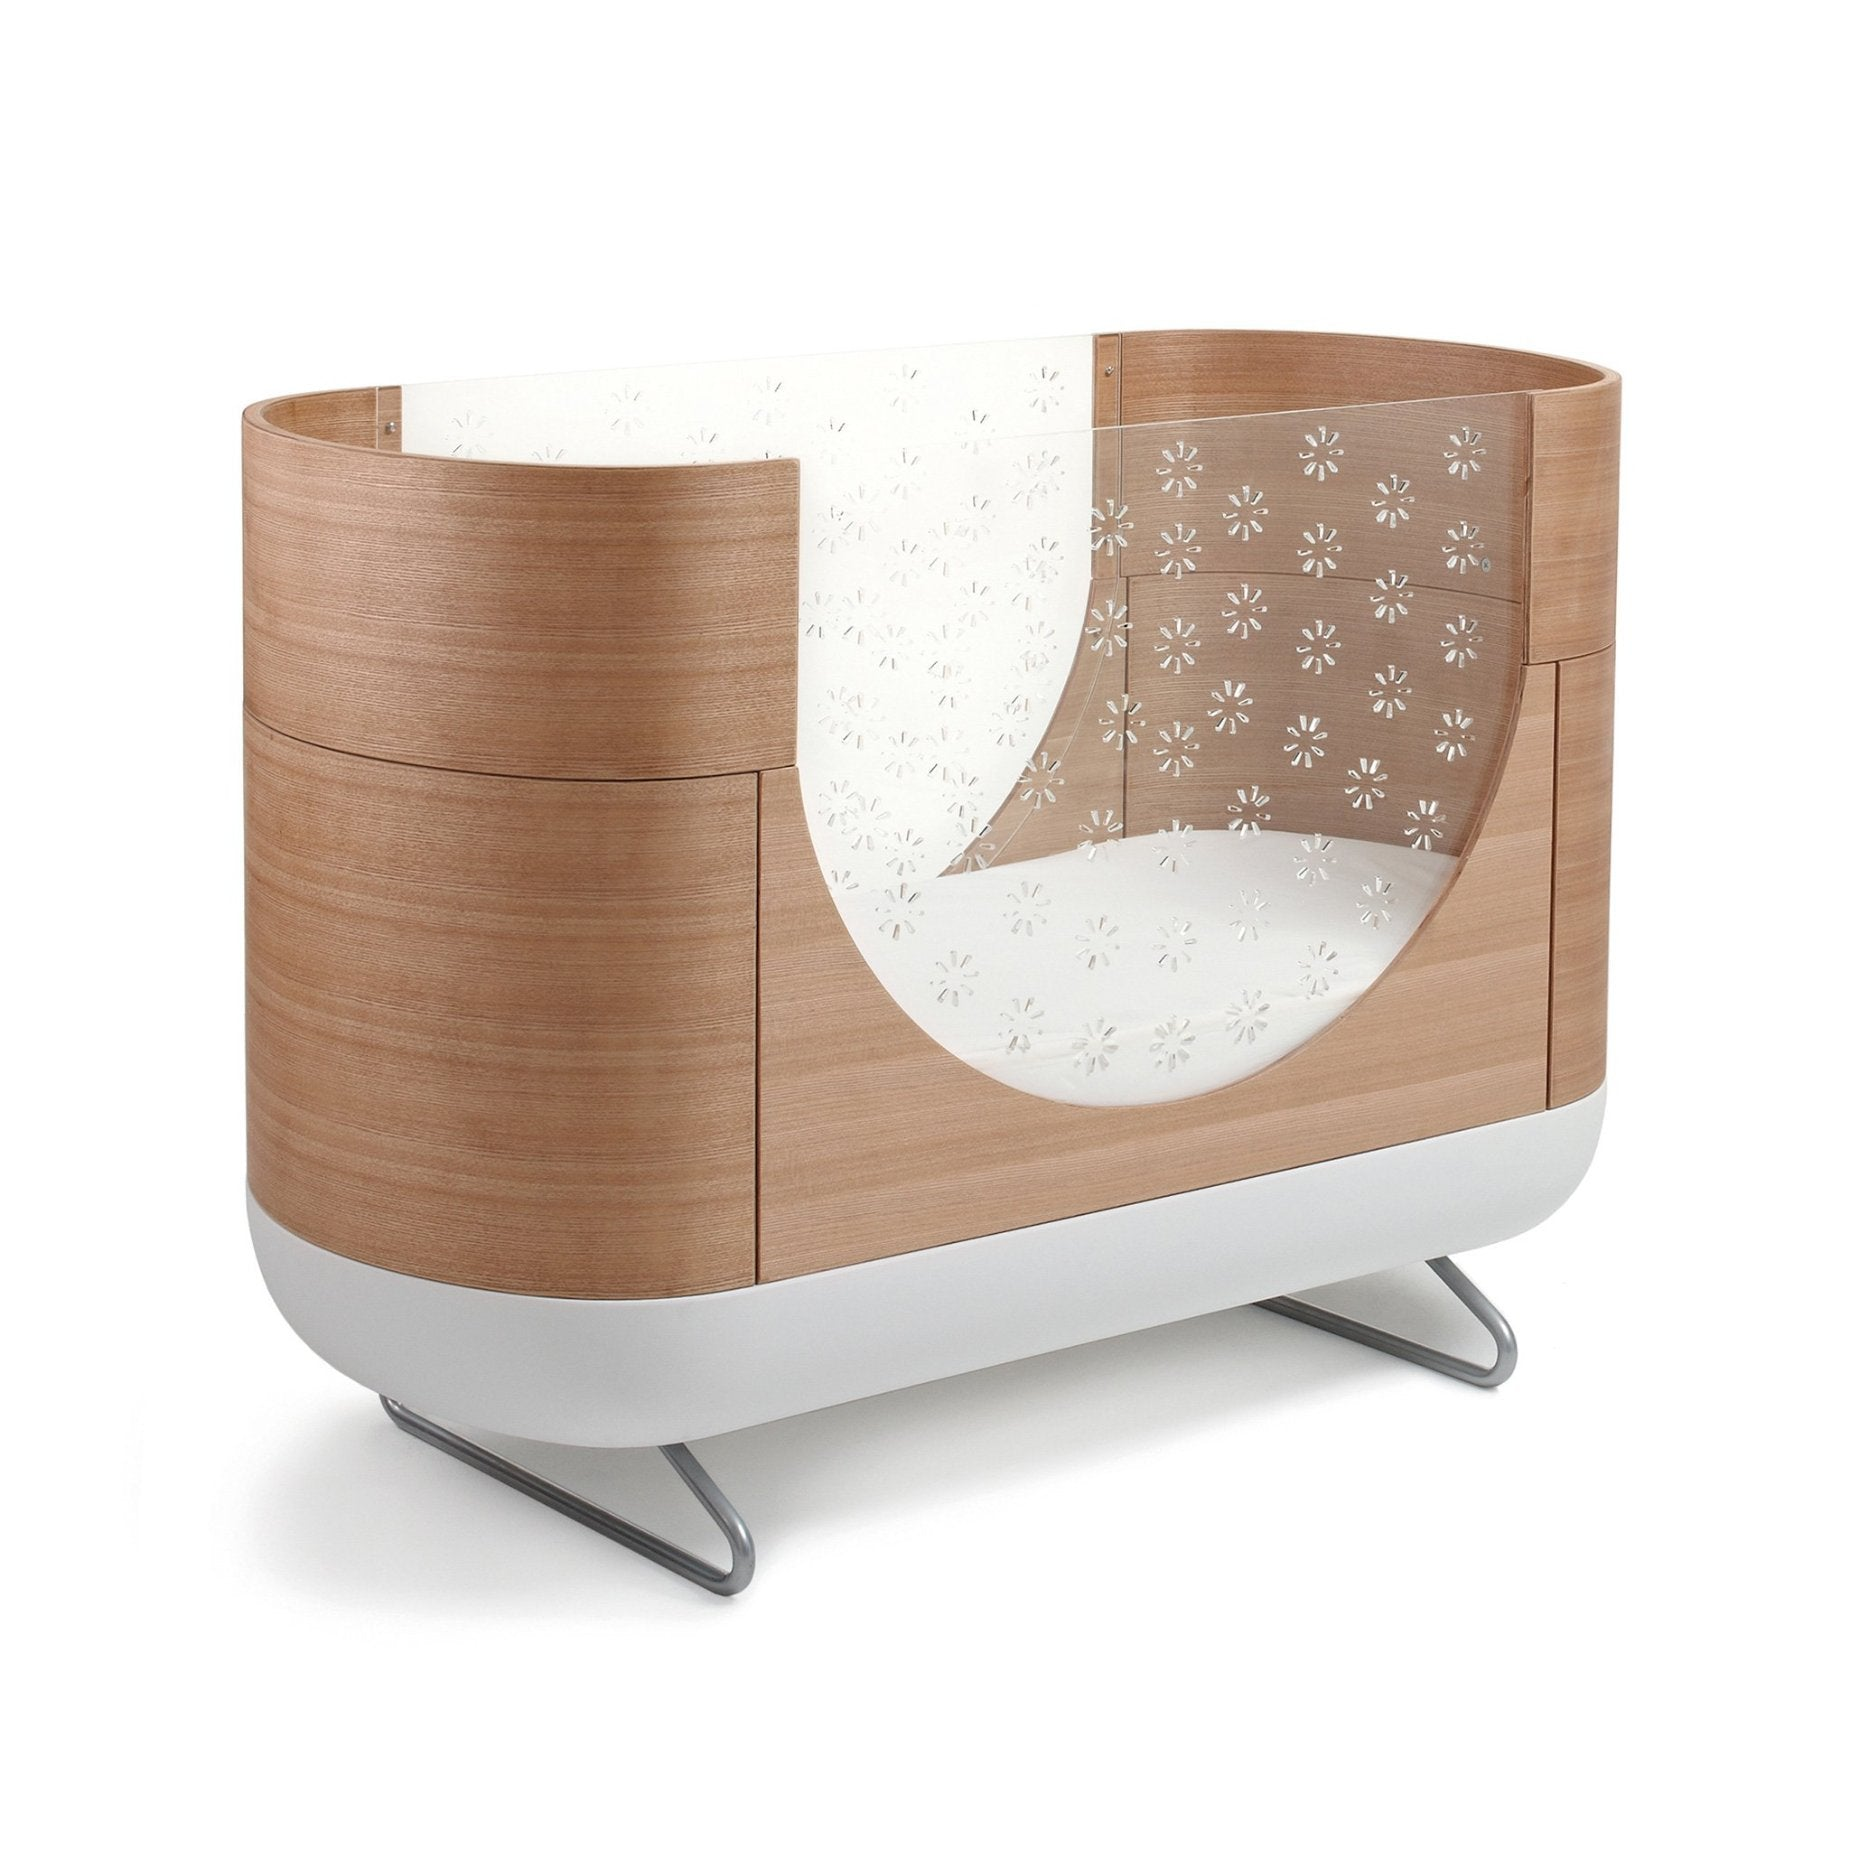 Ubabub Toddler Bed Conversion Kit for Nifty Walnut